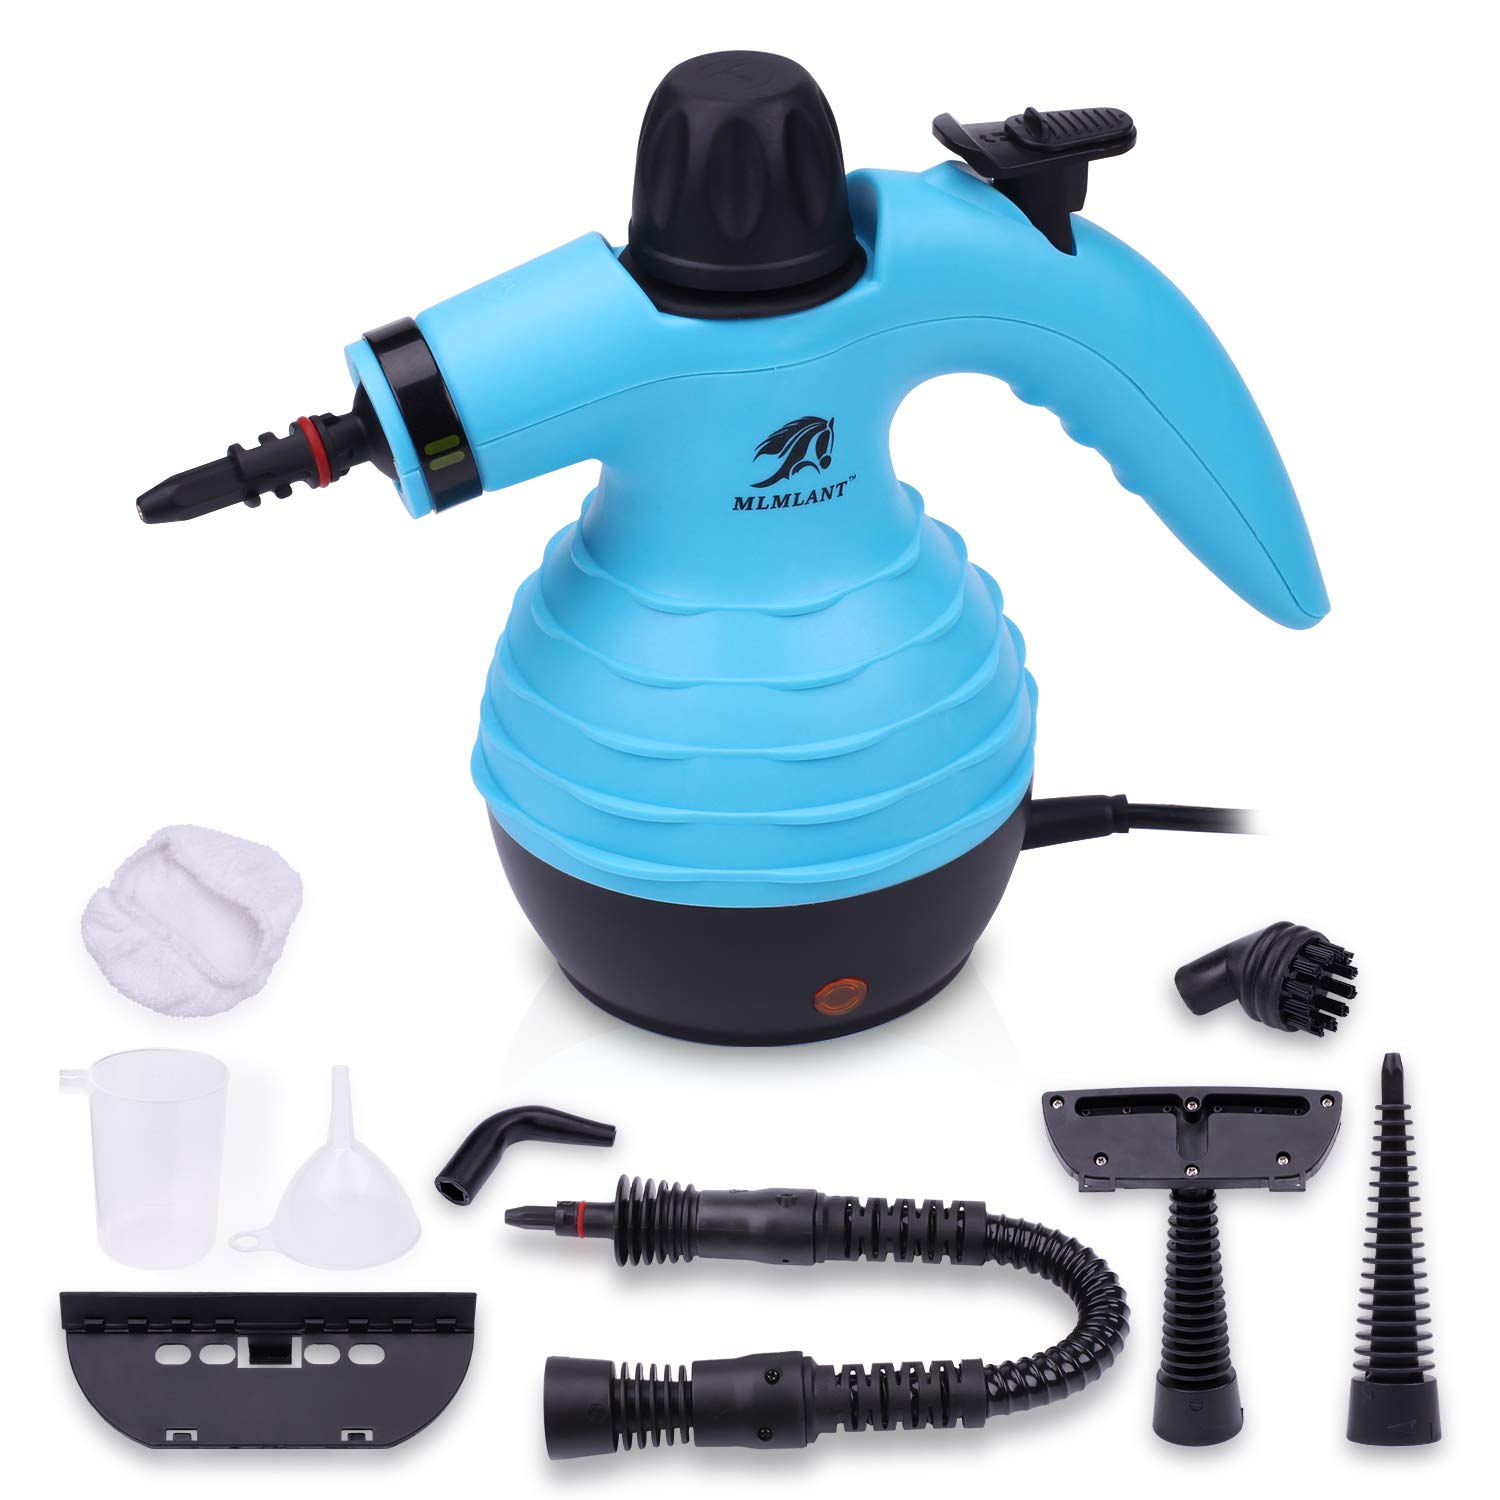 MLMLANT Handheld Pressurized Steam Cleaner 9-Piece Accessory Set - Multi-Purpose Multi-Surface All Natural, Chemical-Free Steam Cleaning Home, Auto, Patio, More by MLMLANT